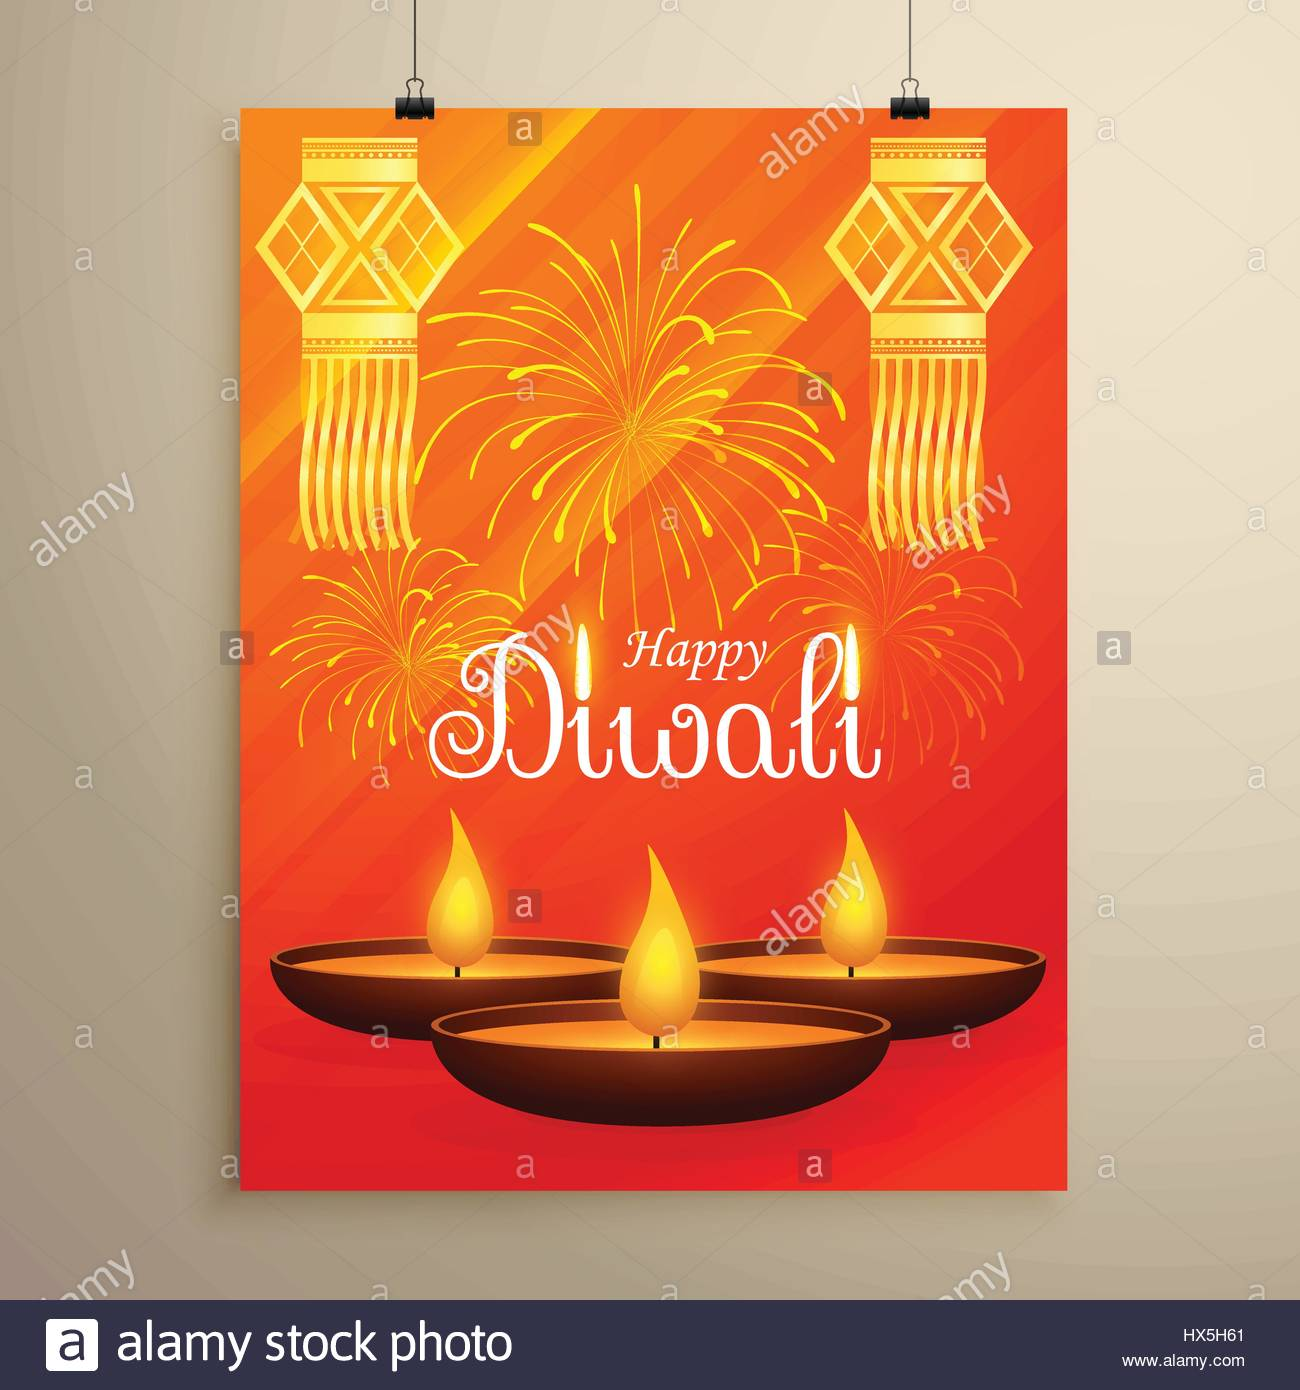 diwali festival flyer design with diya fireworks and hanging lamps